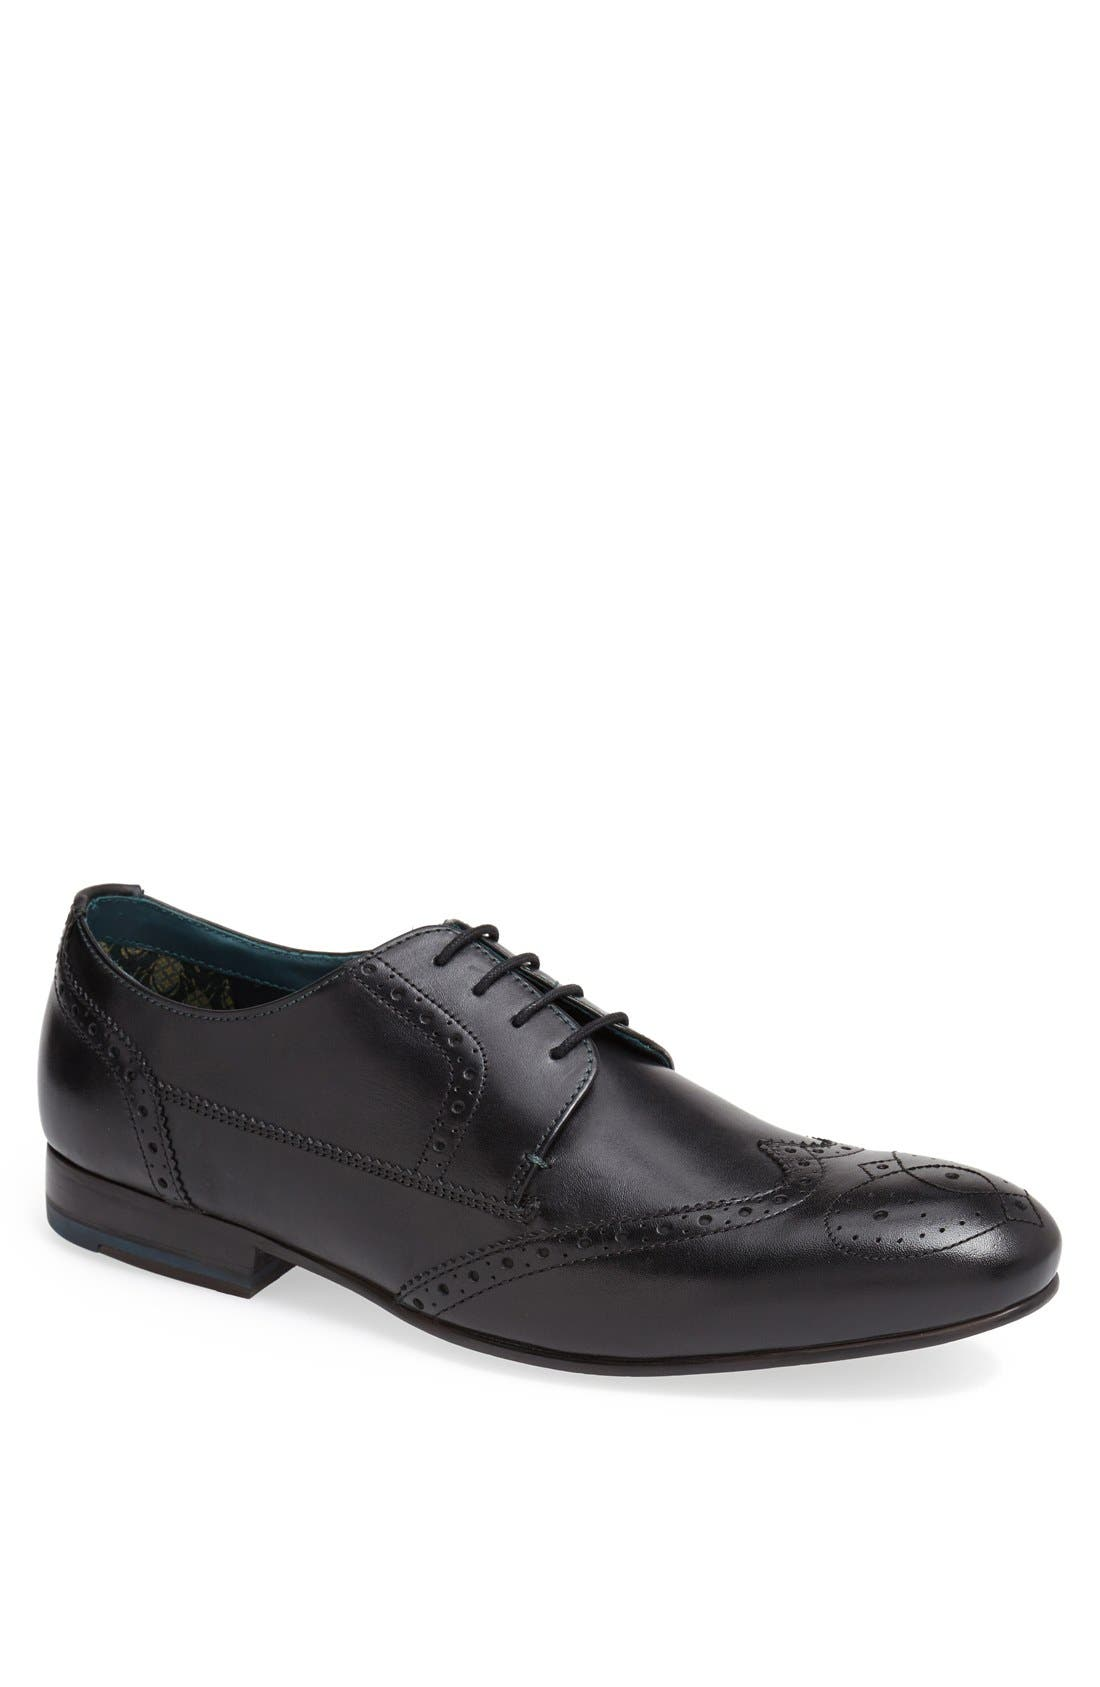 Main Image - Ted Baker London 'Barsel' Wingtip